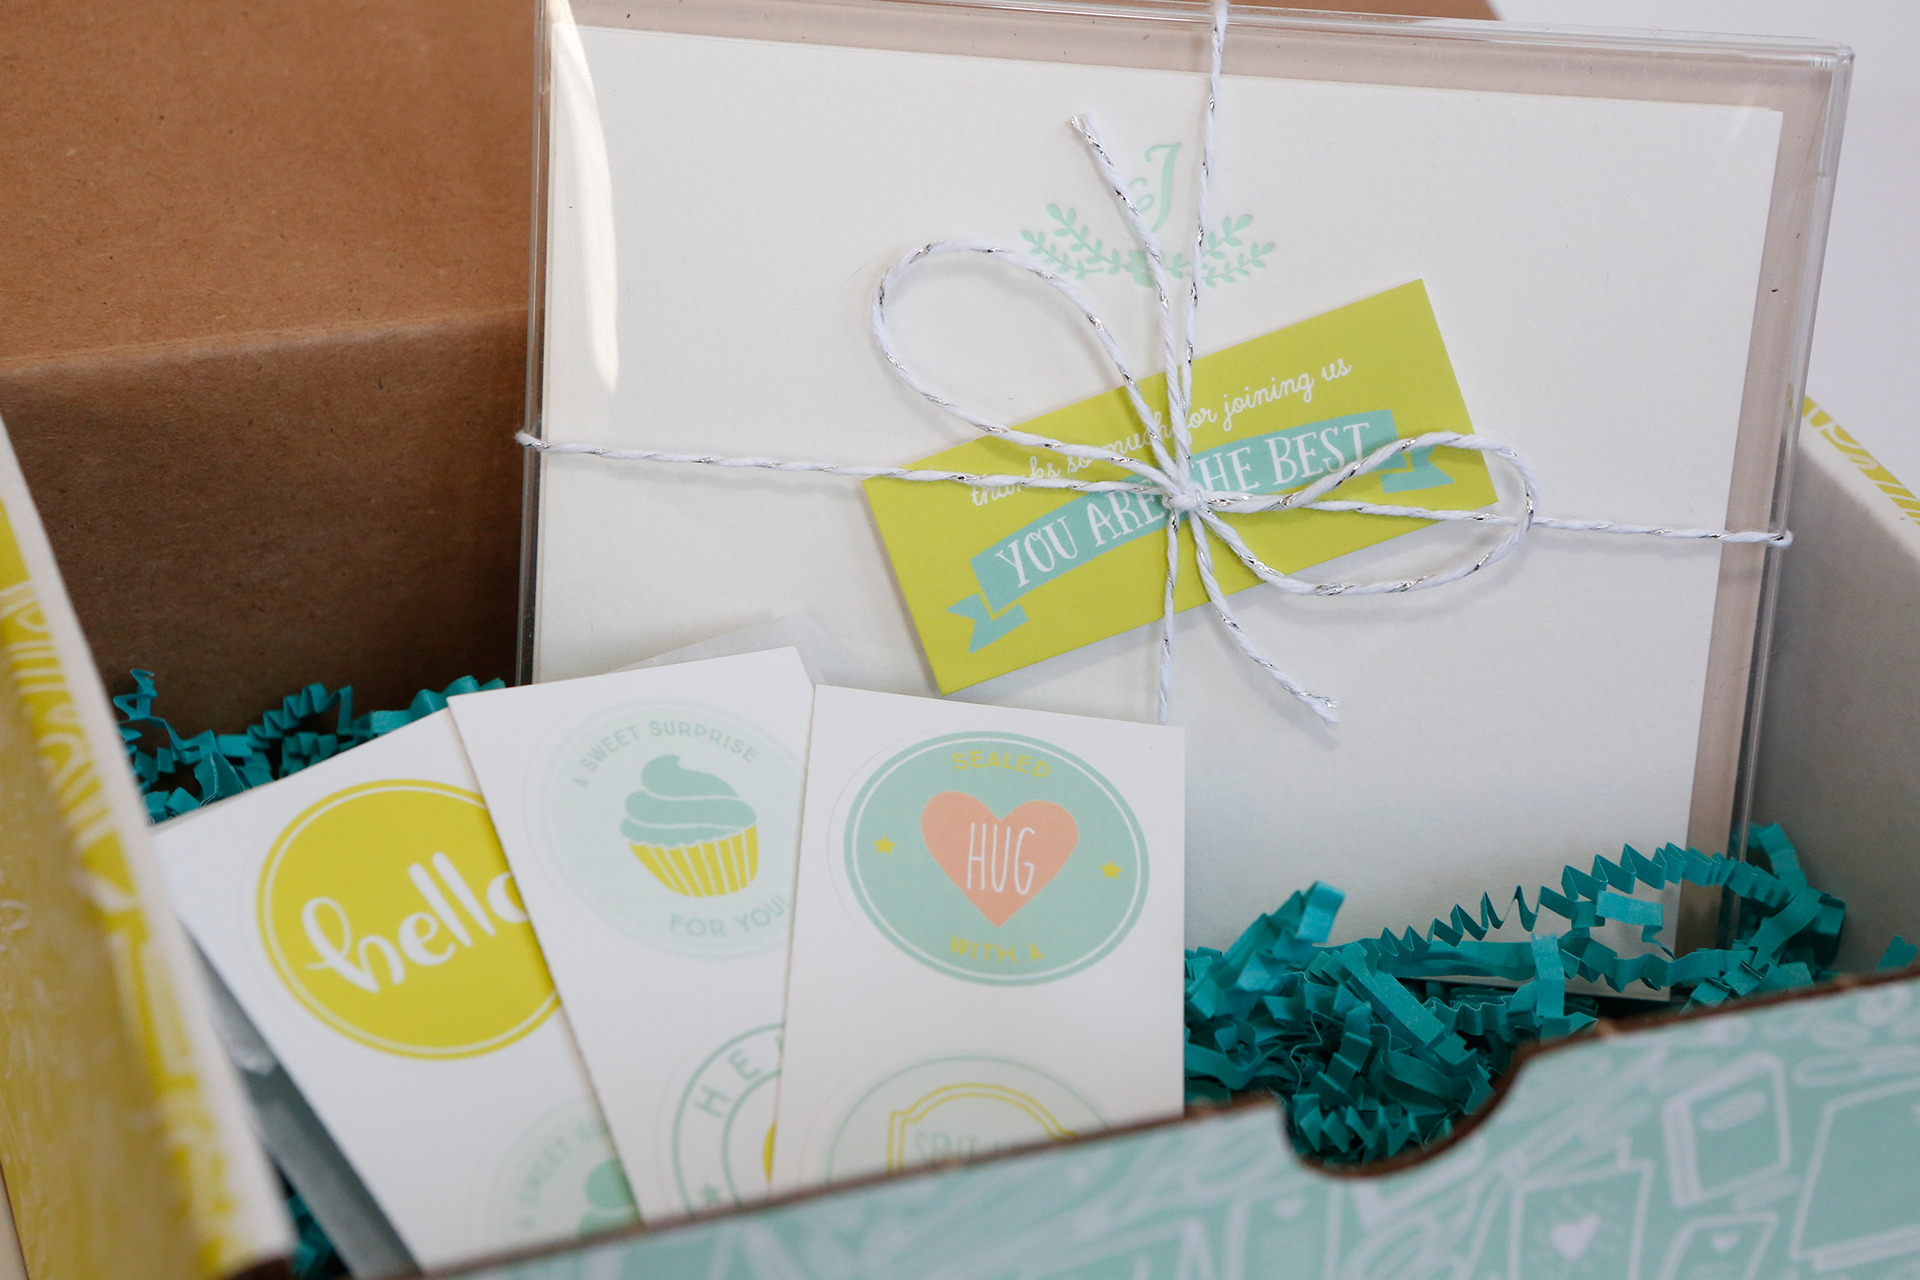 Monthly Letterpress Personalized Stationery Subscription Box - Join at www.hello-post.com